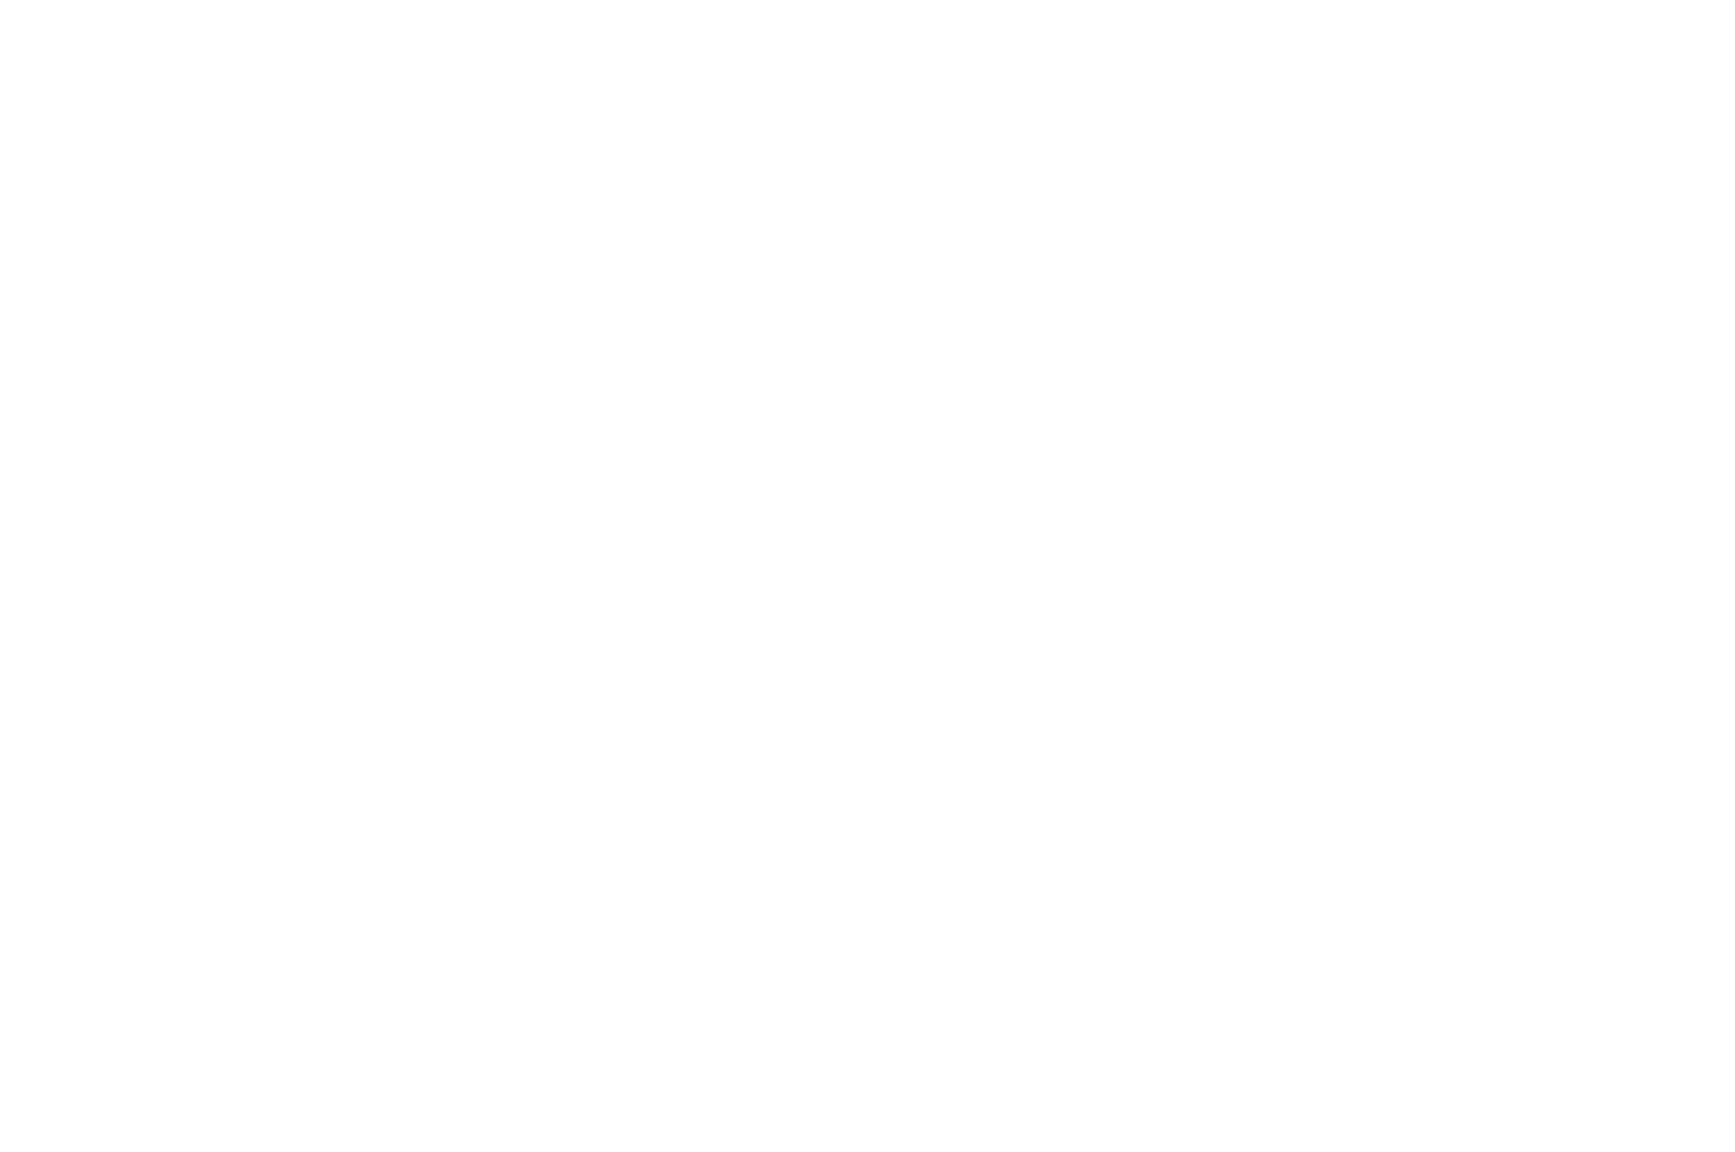 OFFICIAL SELECTION - Denver Underground Film Festival - 2019.png